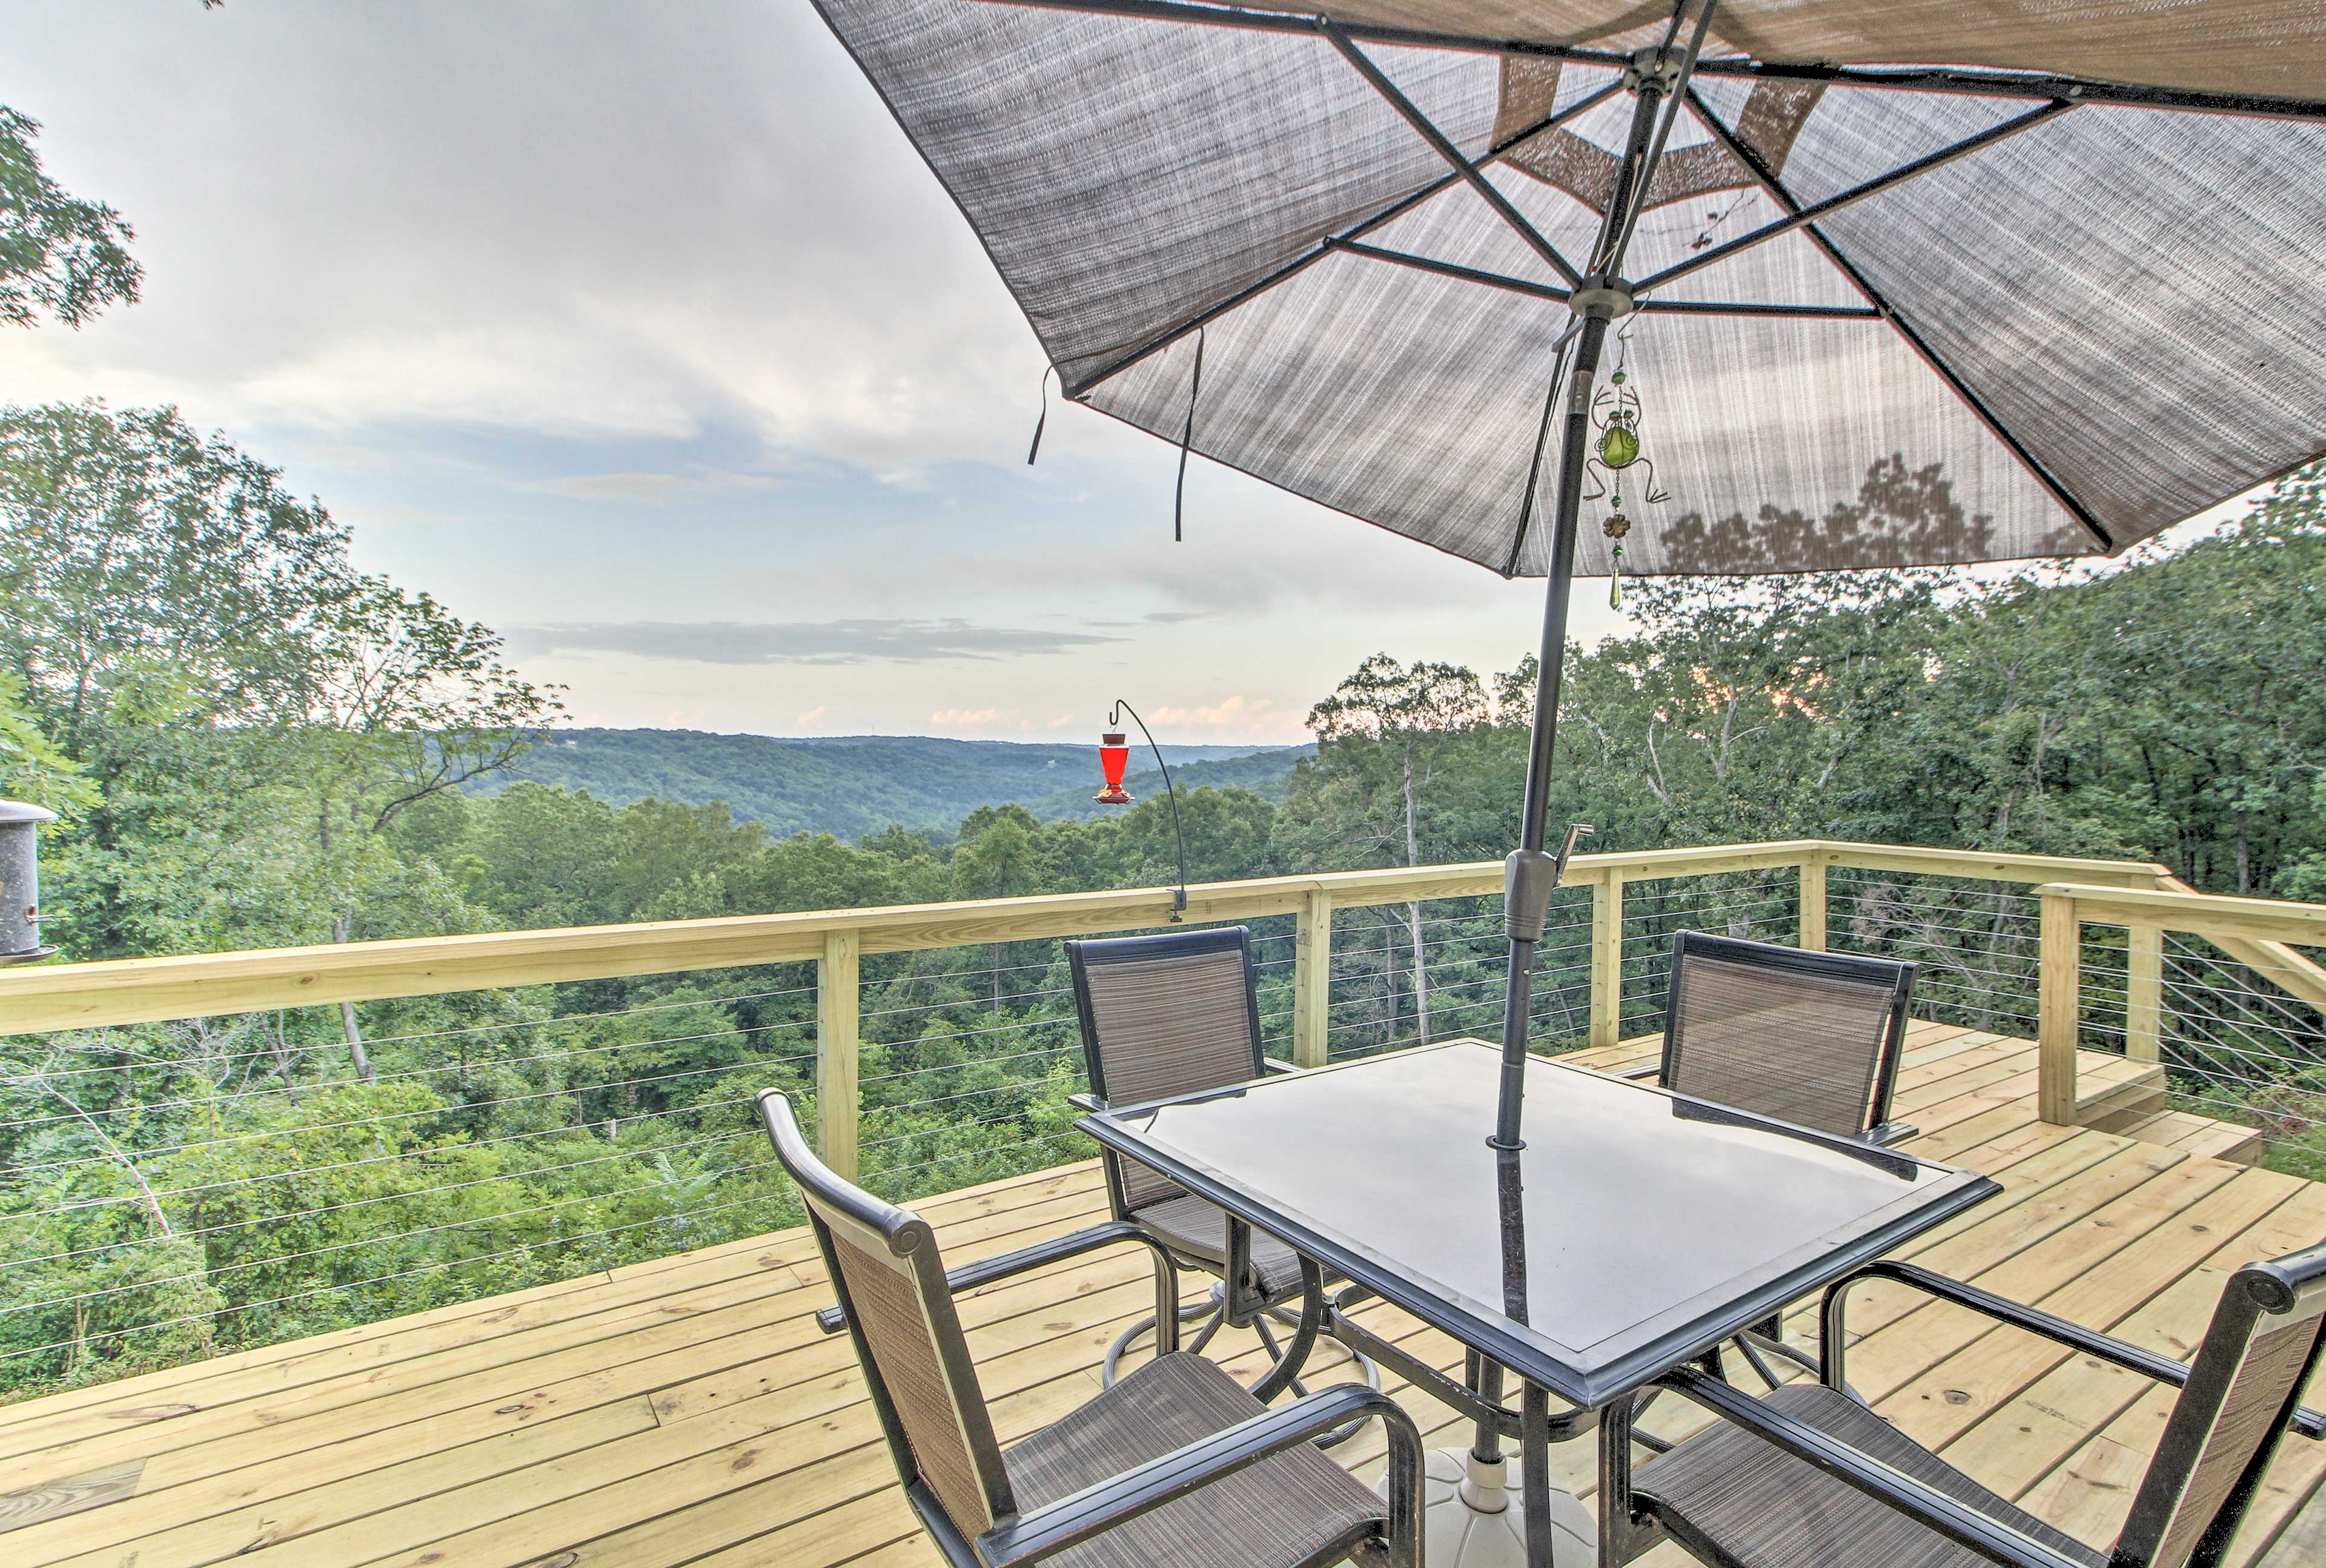 This 950-sq-ft deck provides spectacular views of the Branson area.